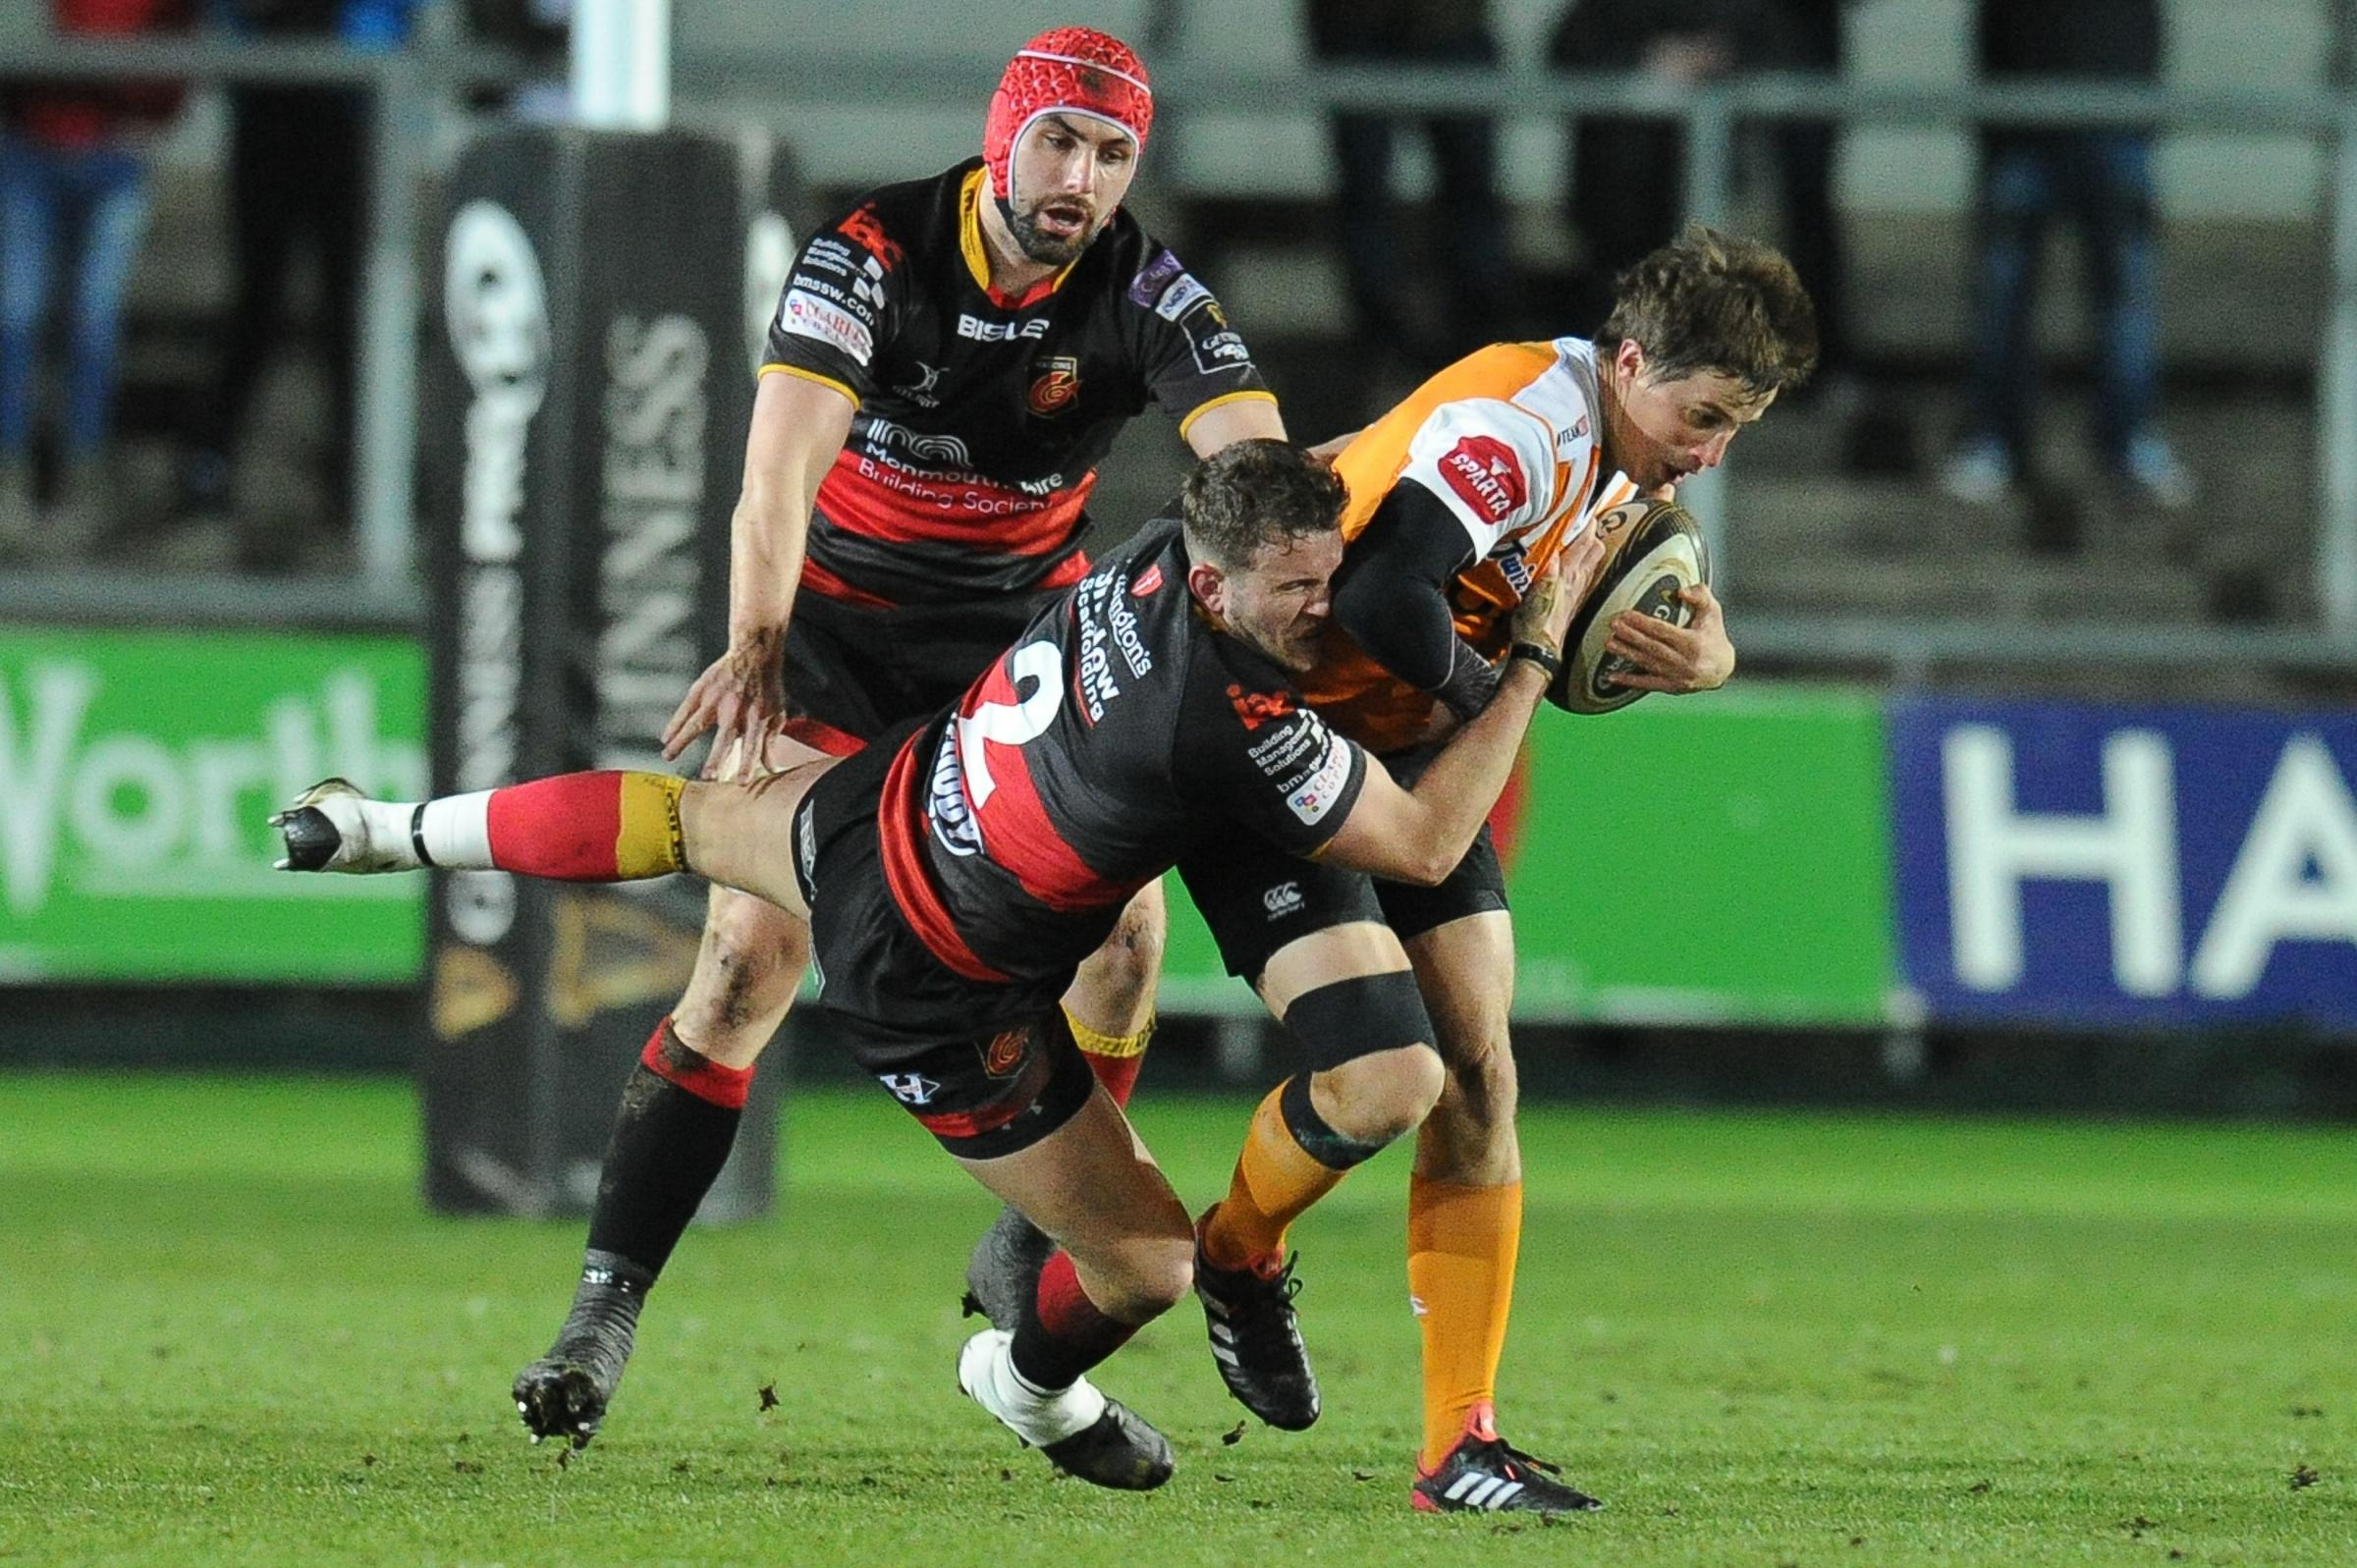 TALISMAN: Dragons hooker Elliot Dee will lead the charge against the Cheetahs